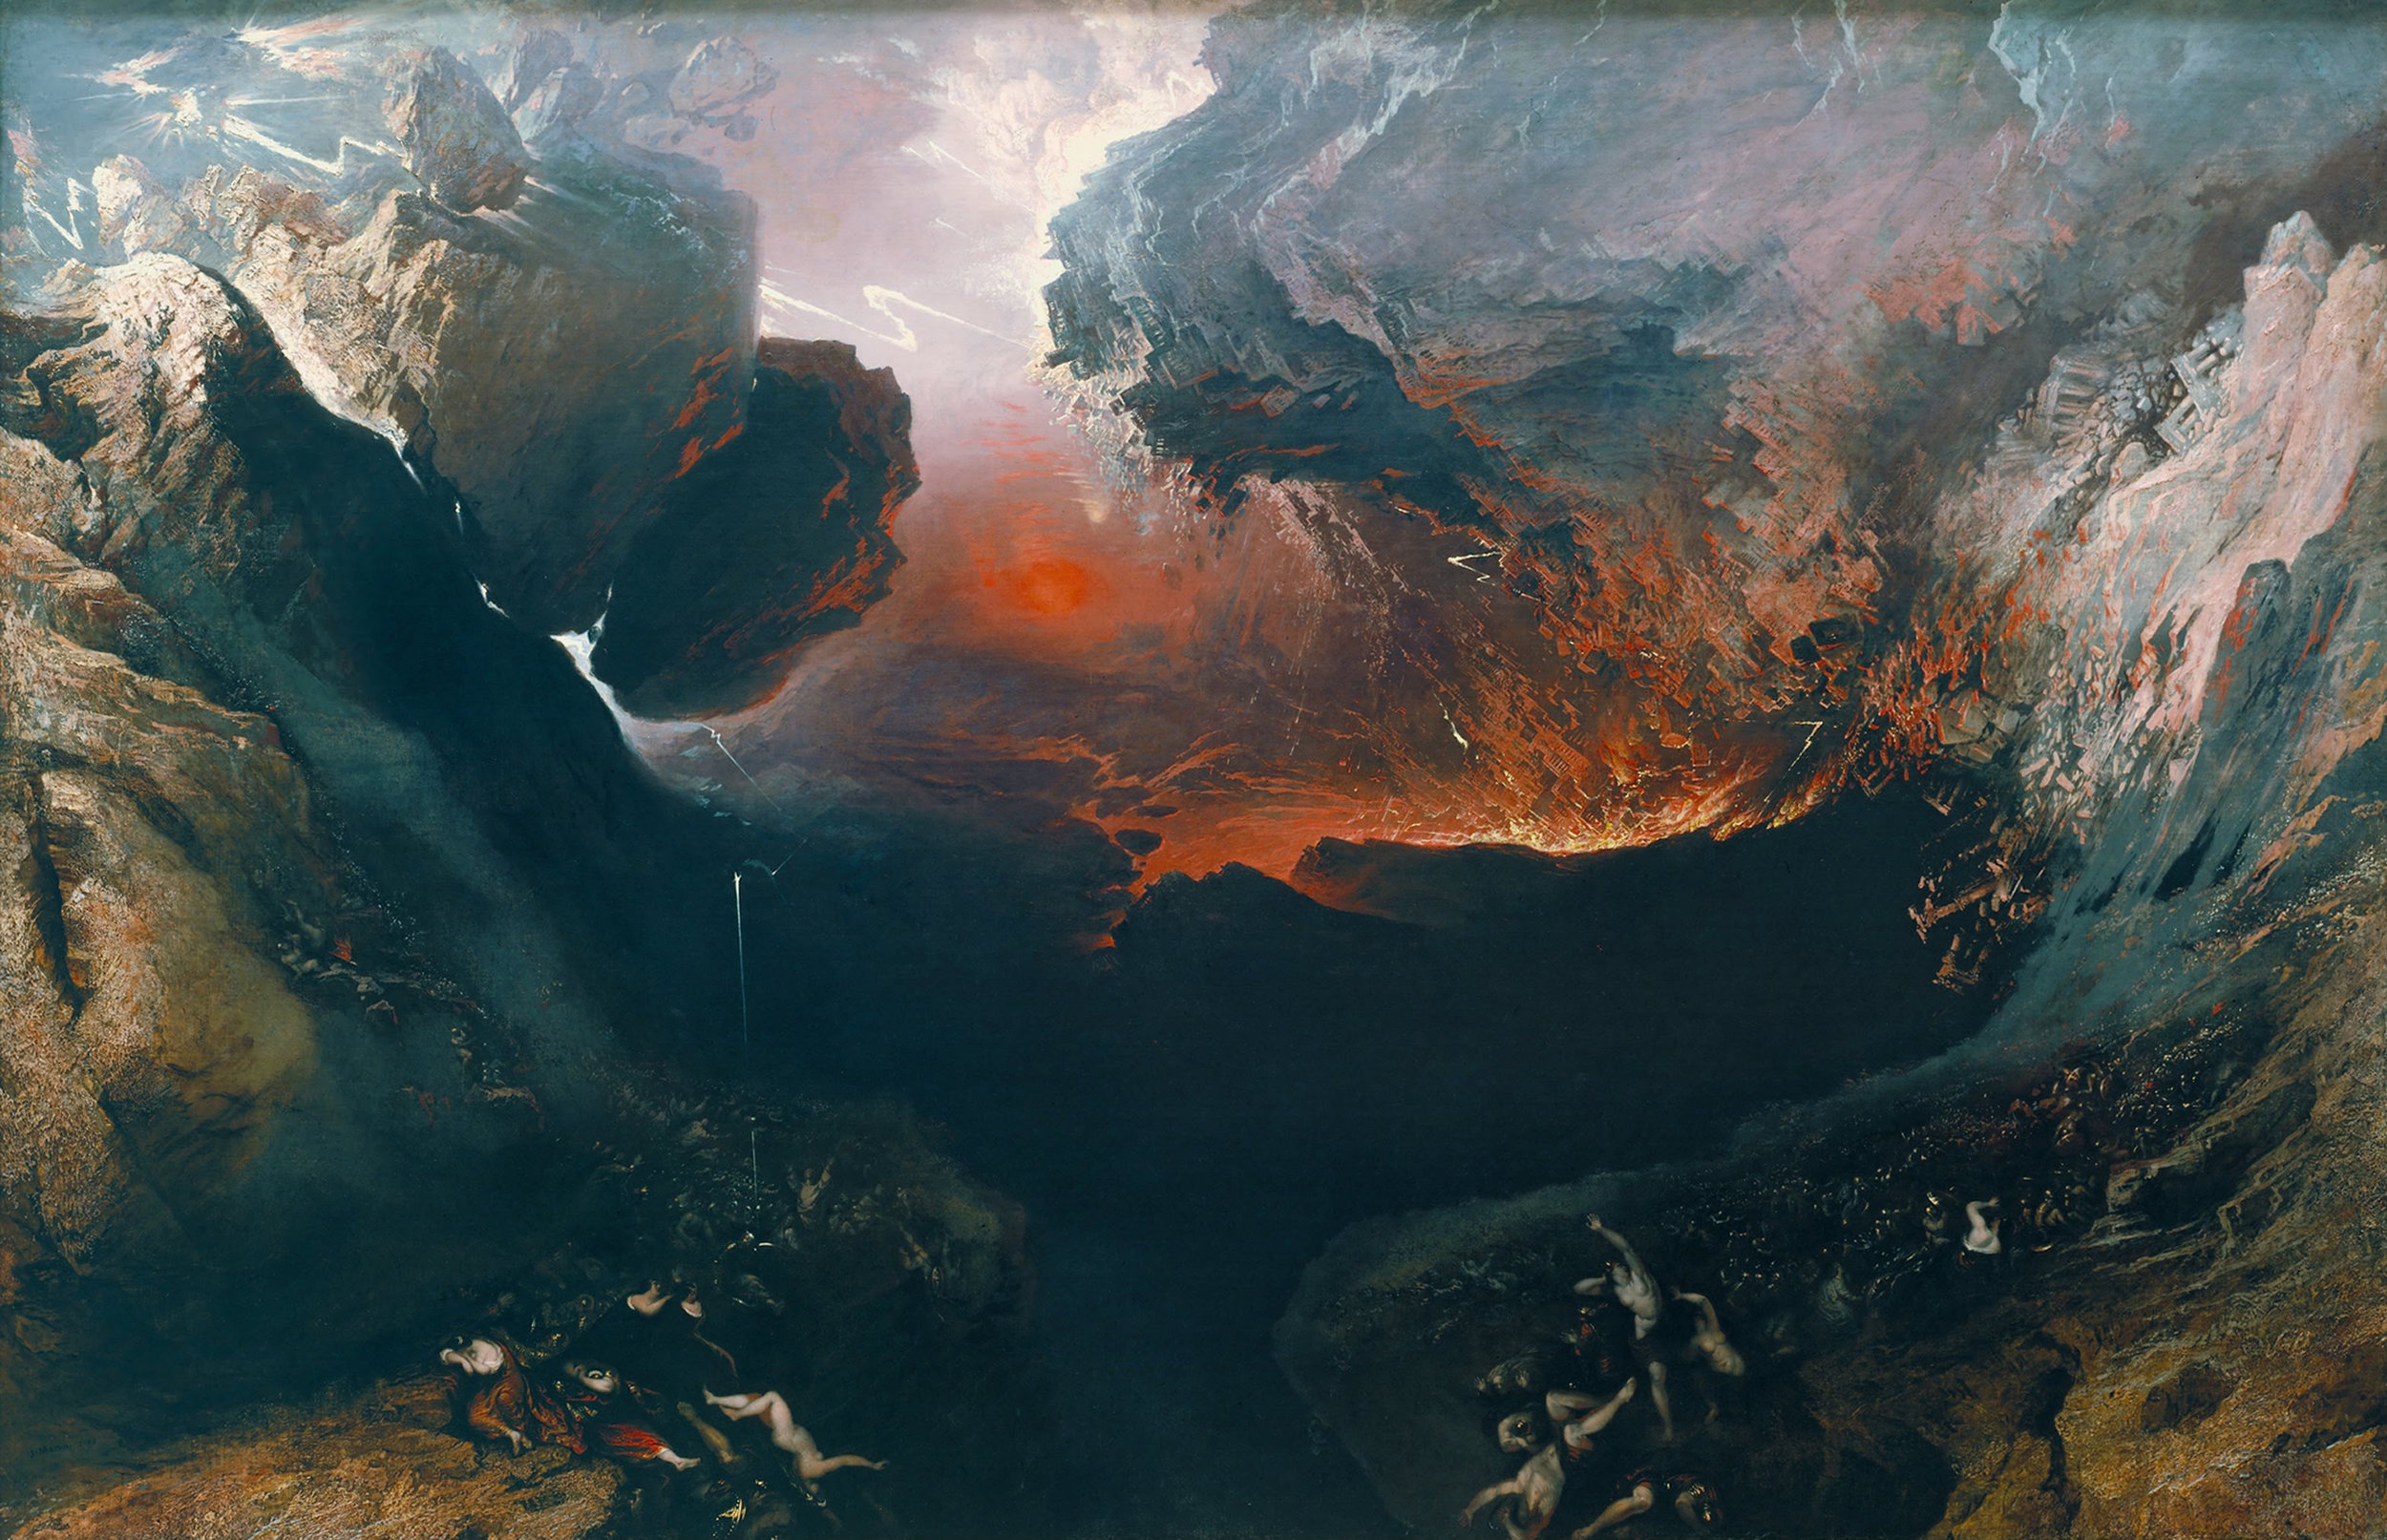 'The great day of his Wrath' 1851-1853 by John Martin is a prime example of Romanticism even though it's painted during the later stages of the artistic movement.